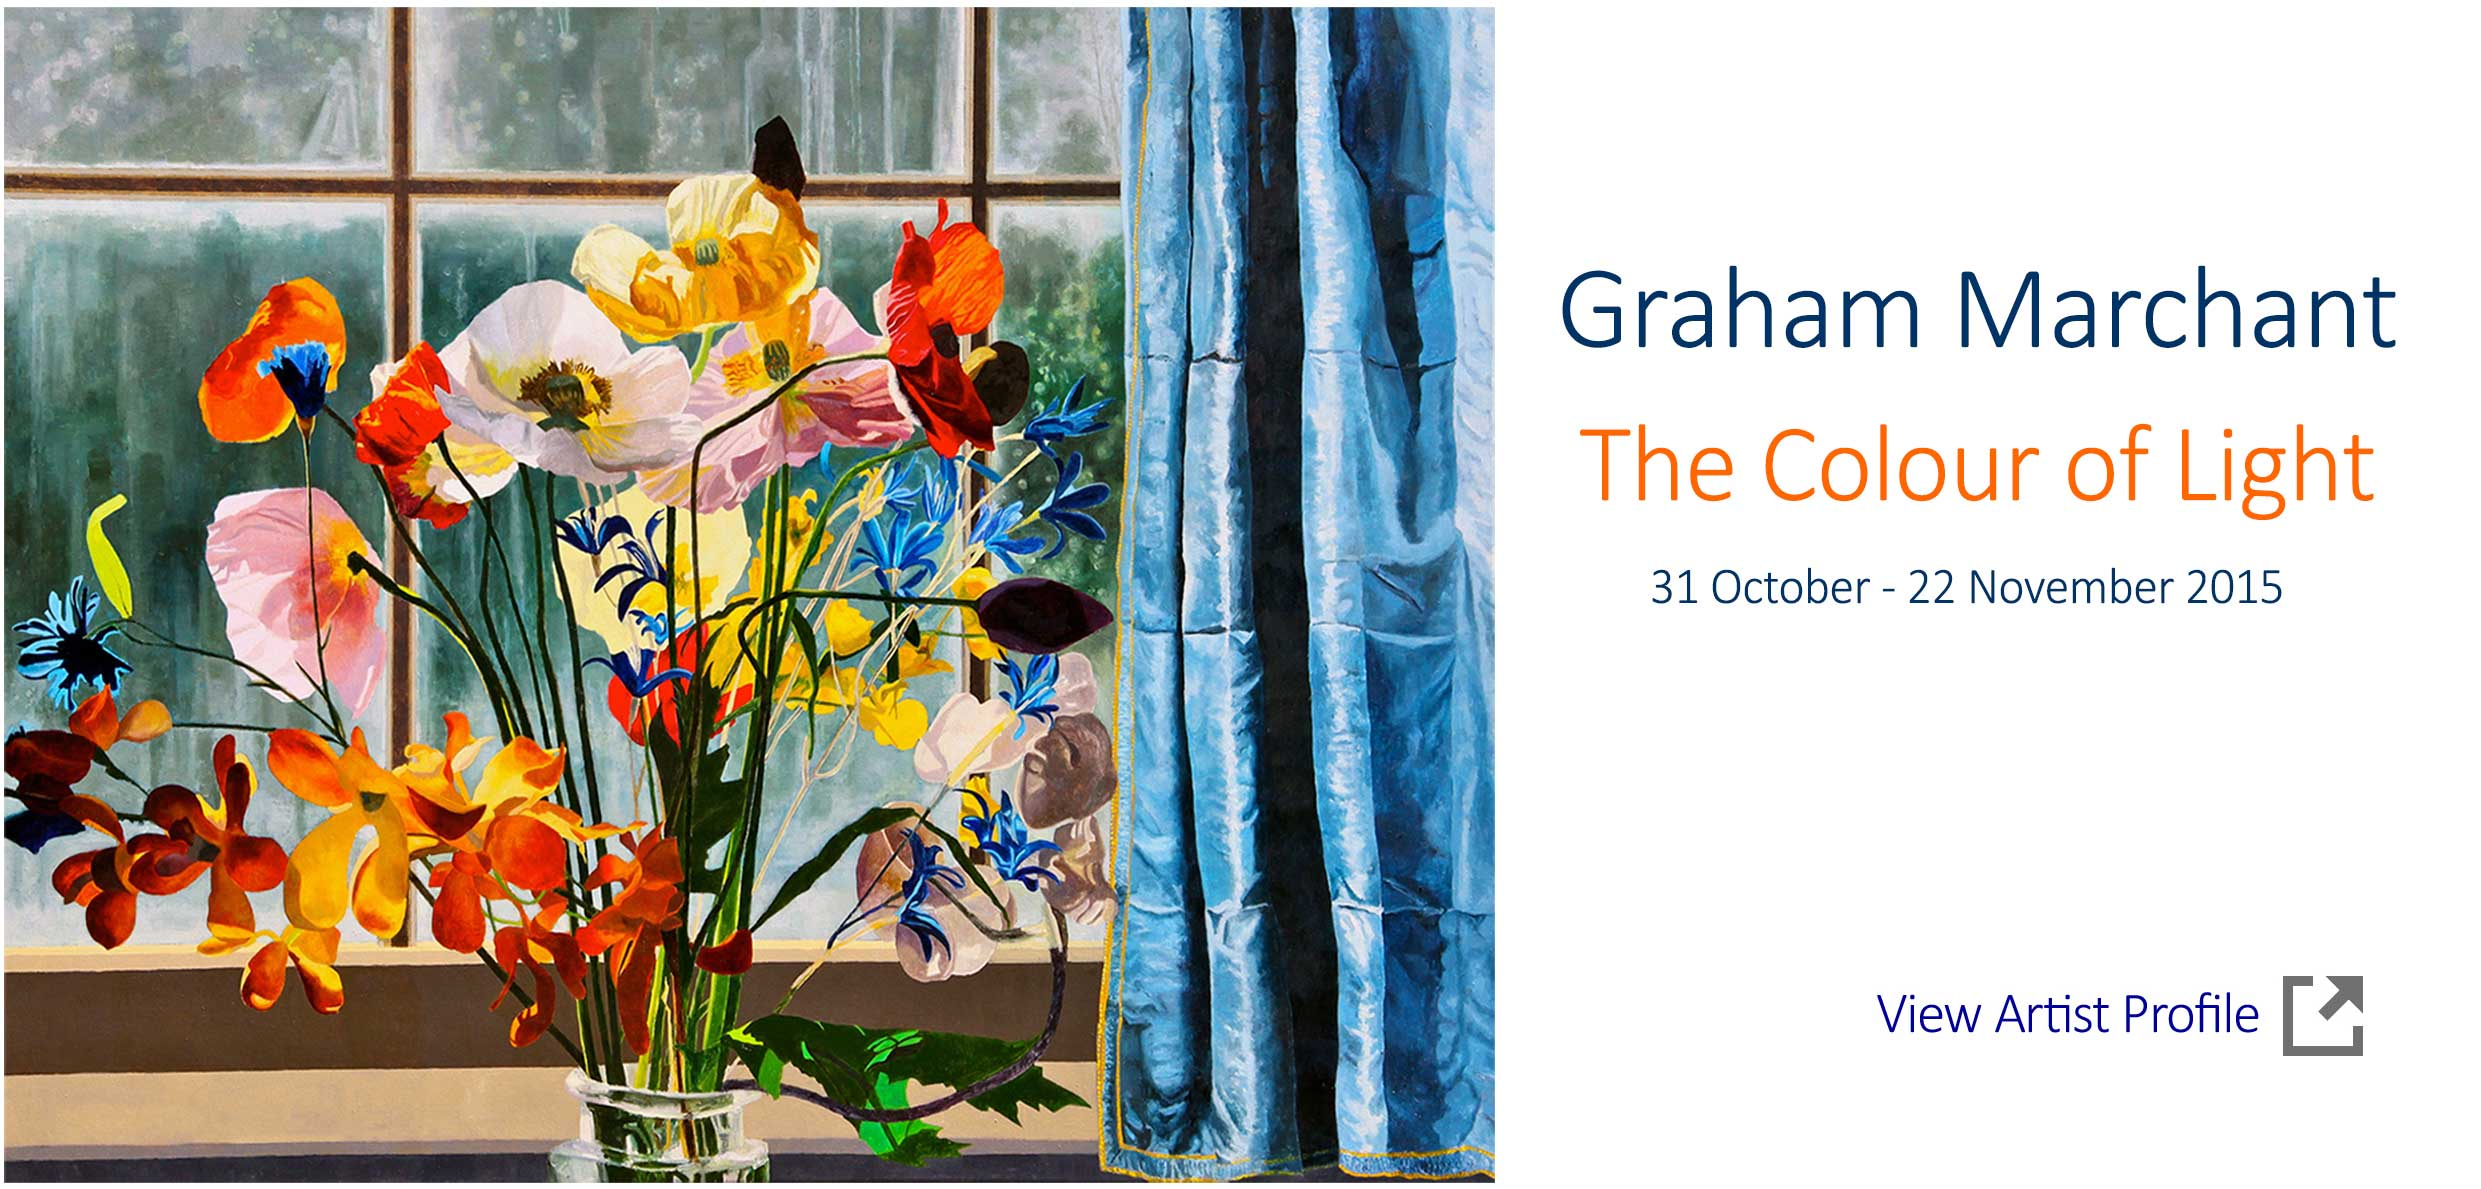 Artsite Gallery Exhibition  - Graham Marchant - The Colour of Light - Solo Exhibition. Artsite Gallery 31 October - 22 November2015 - join the artist at the opening on Sunday 1st November 3-5pm - All Welcome